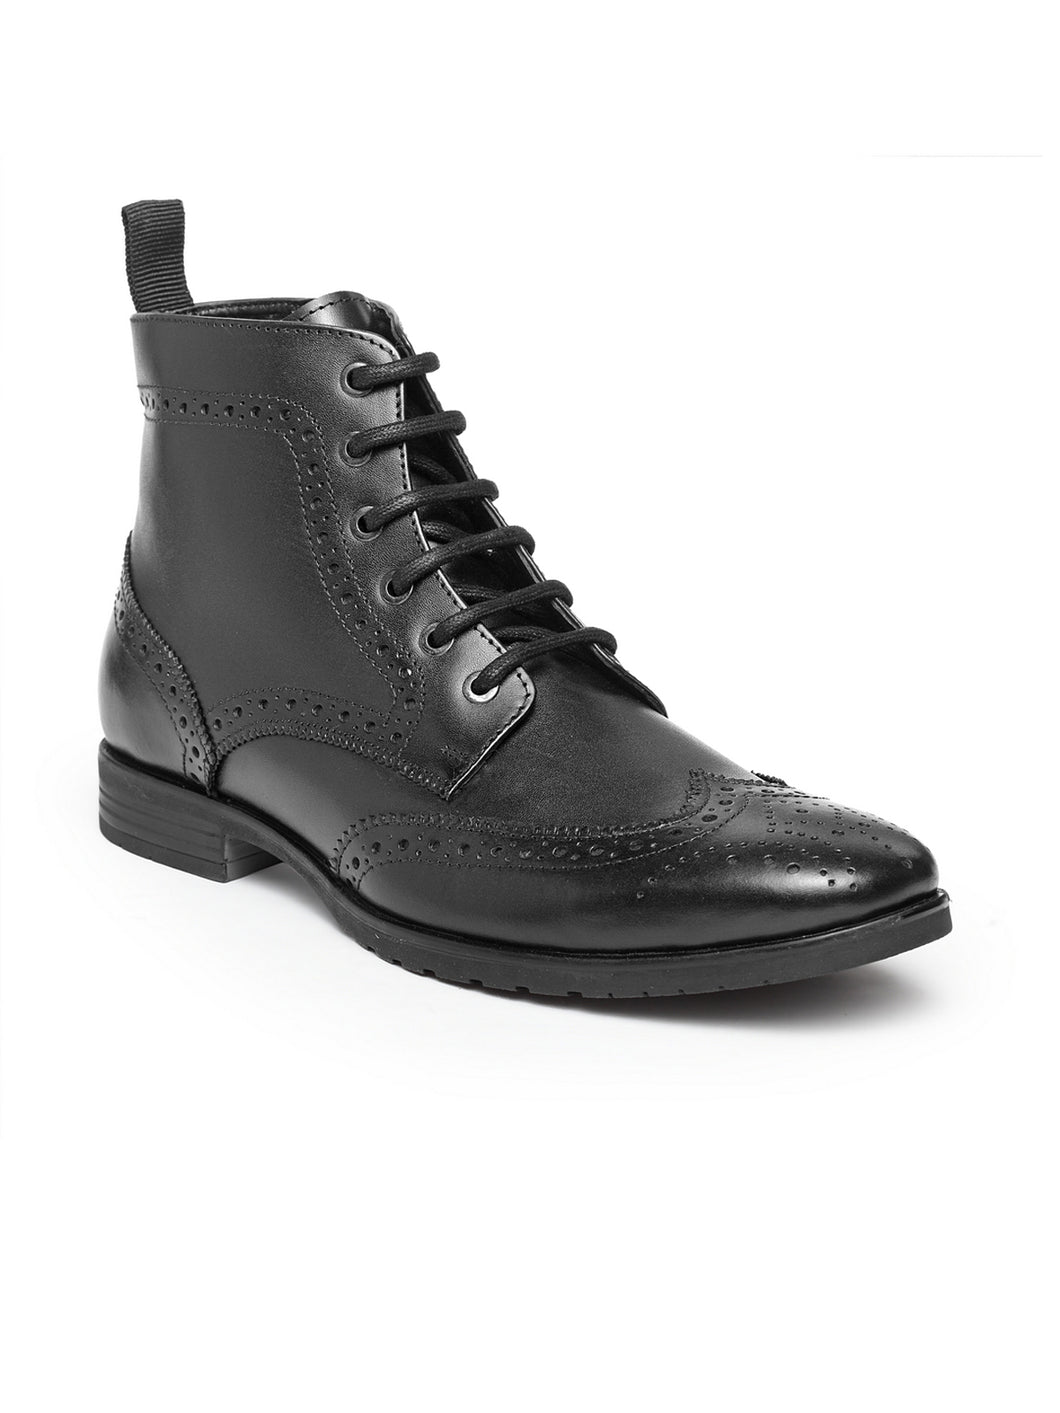 Teakwood Leathers Men's Black Boots